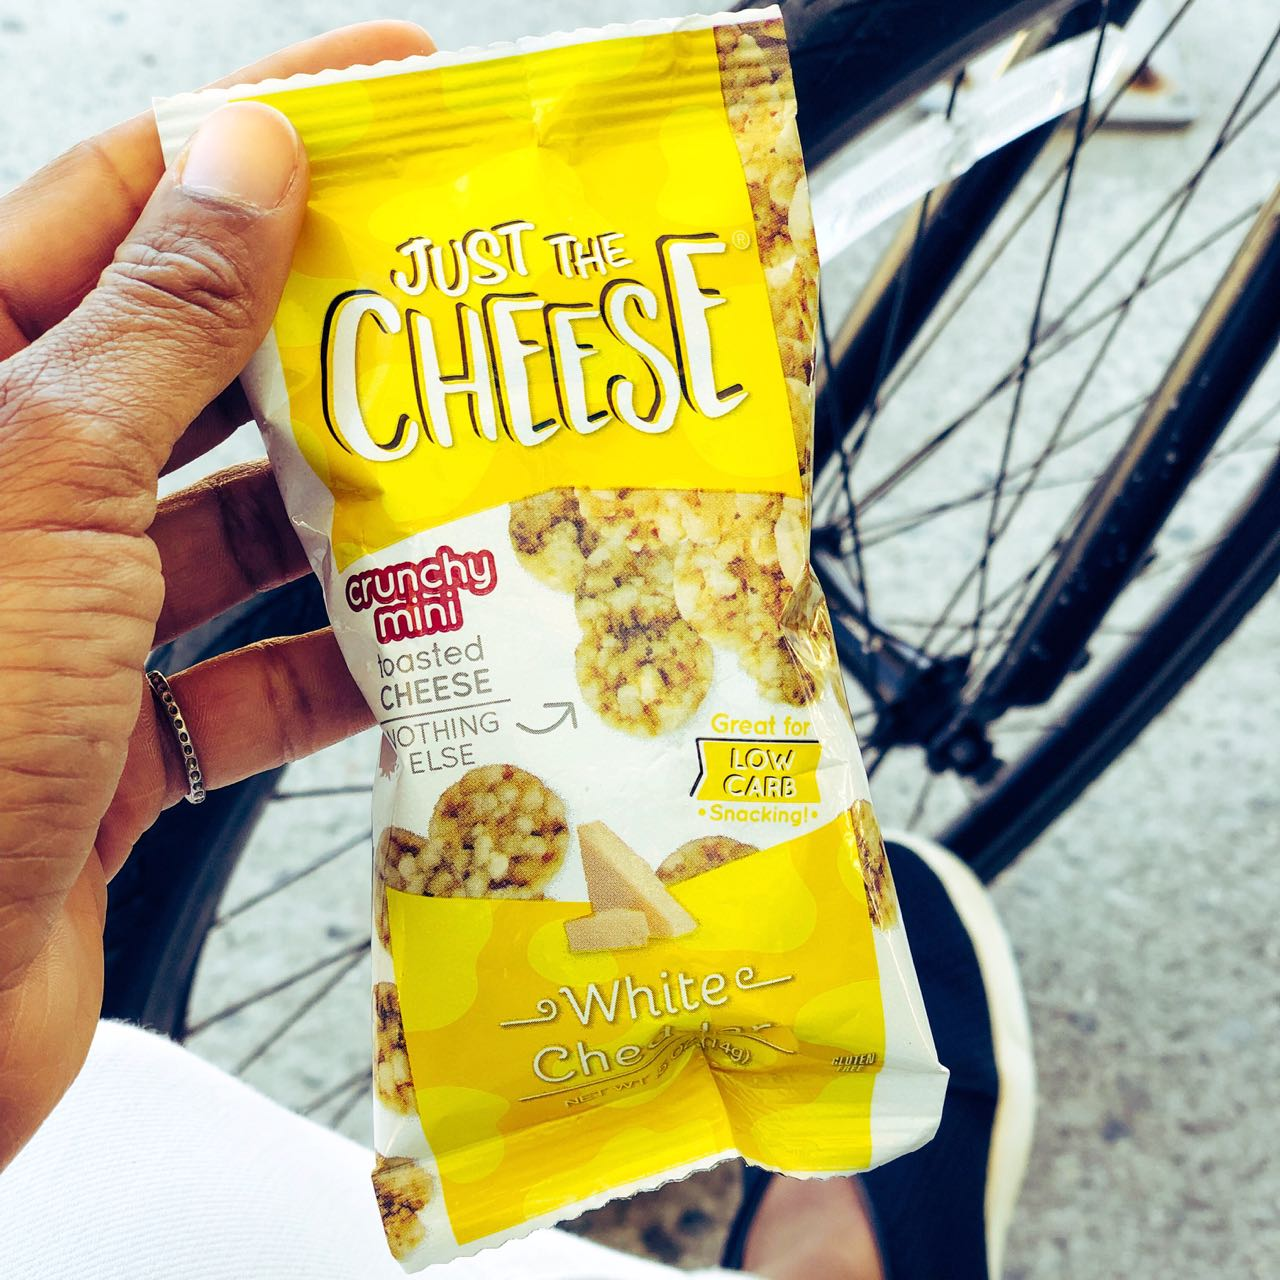 It's Traveling Season! Here Are The Best Snacks To Pack While On The Go